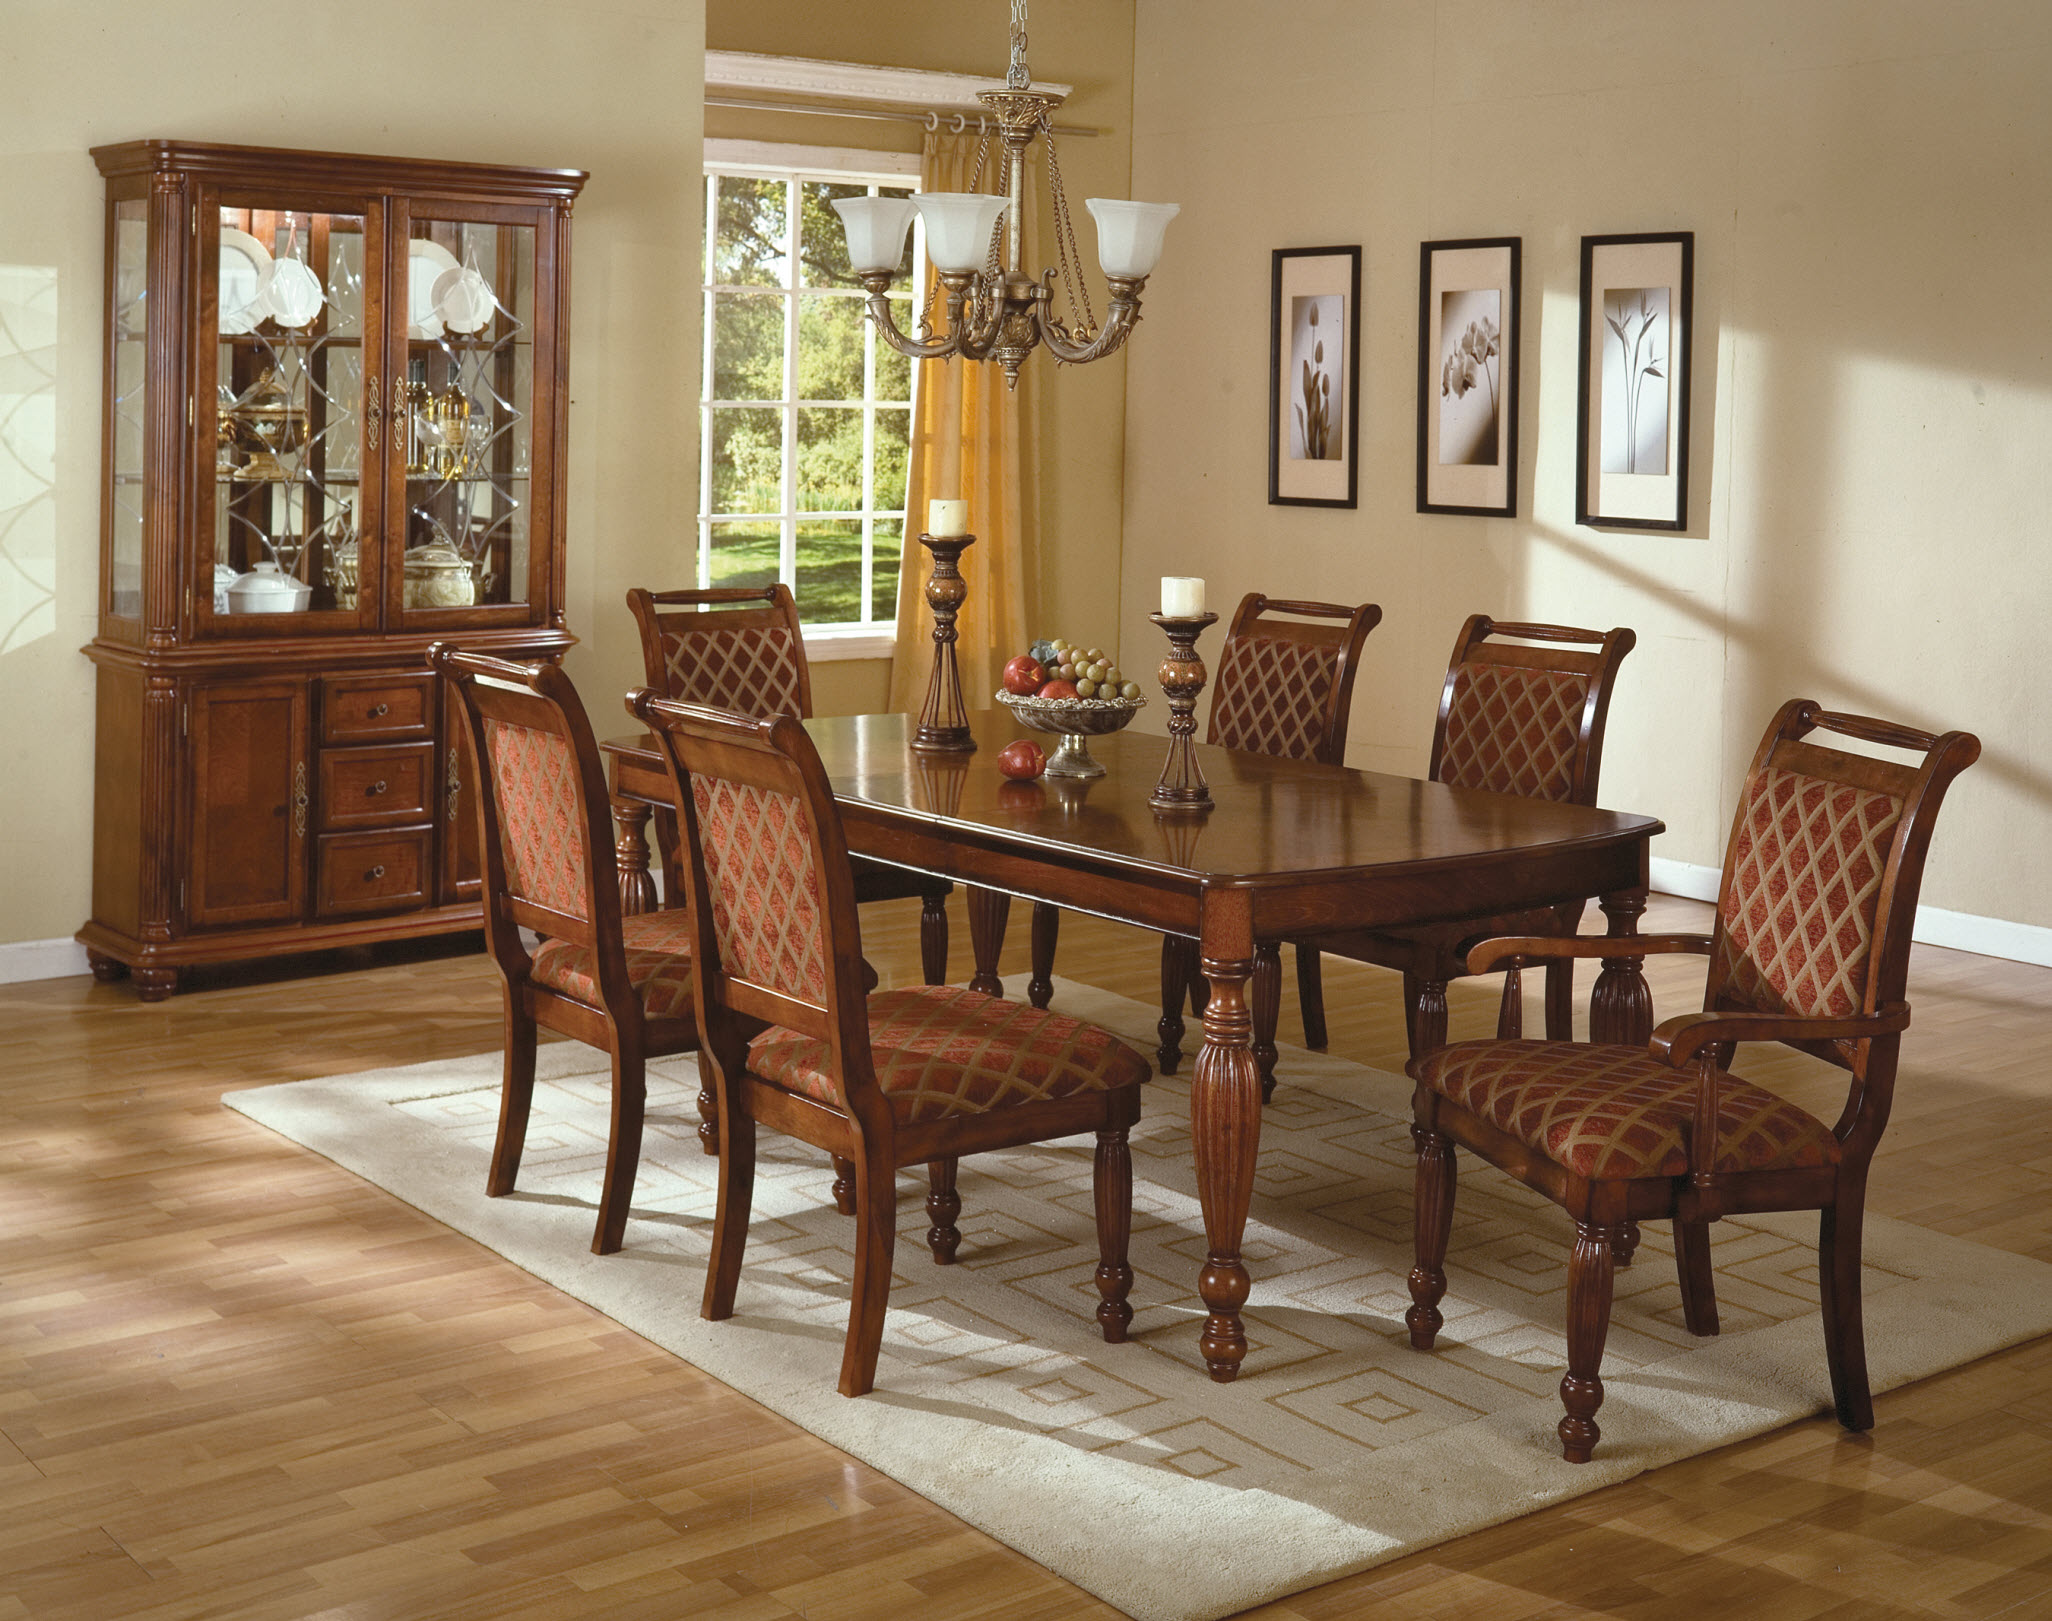 Wonderful Dining Table And Chairs (Image 10 of 10)